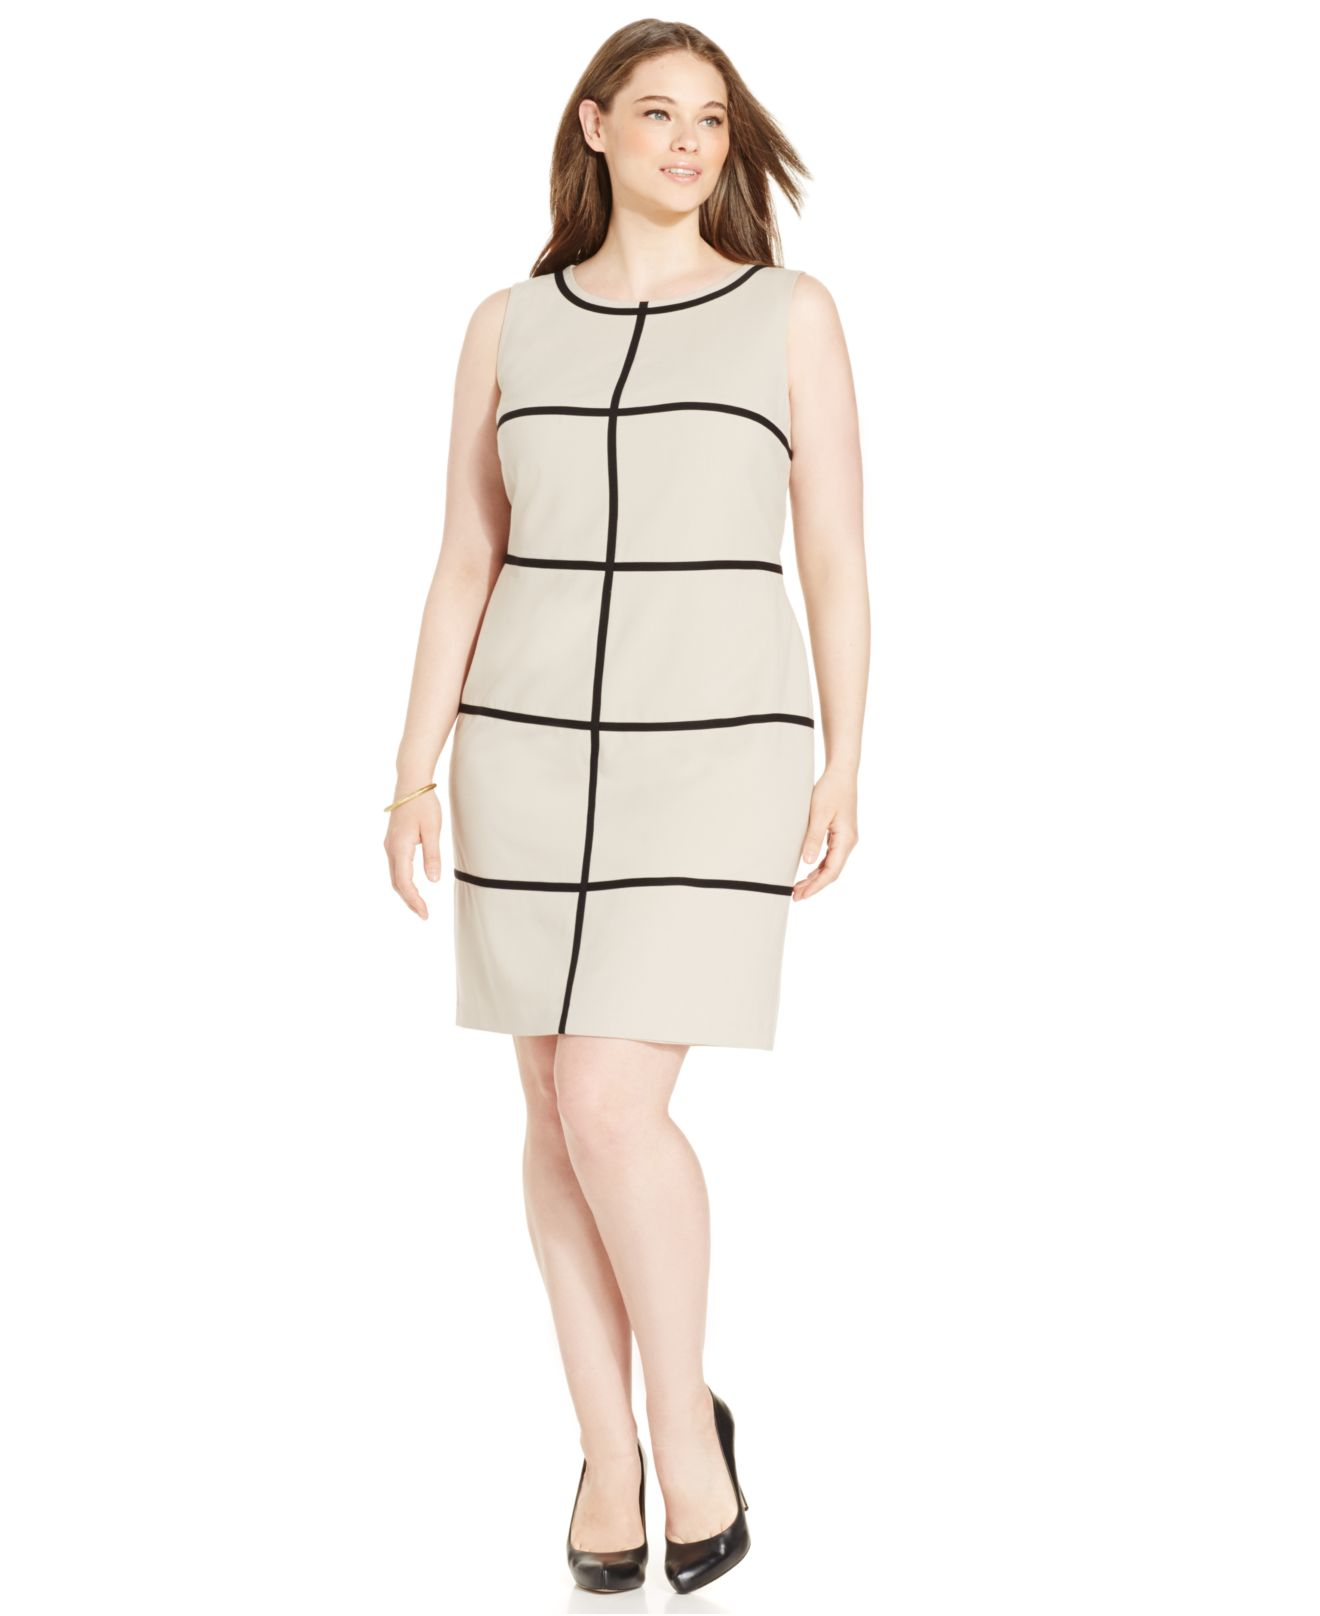 Calvin klein Plus Size Striped Sheath Dress in Natural | Lyst